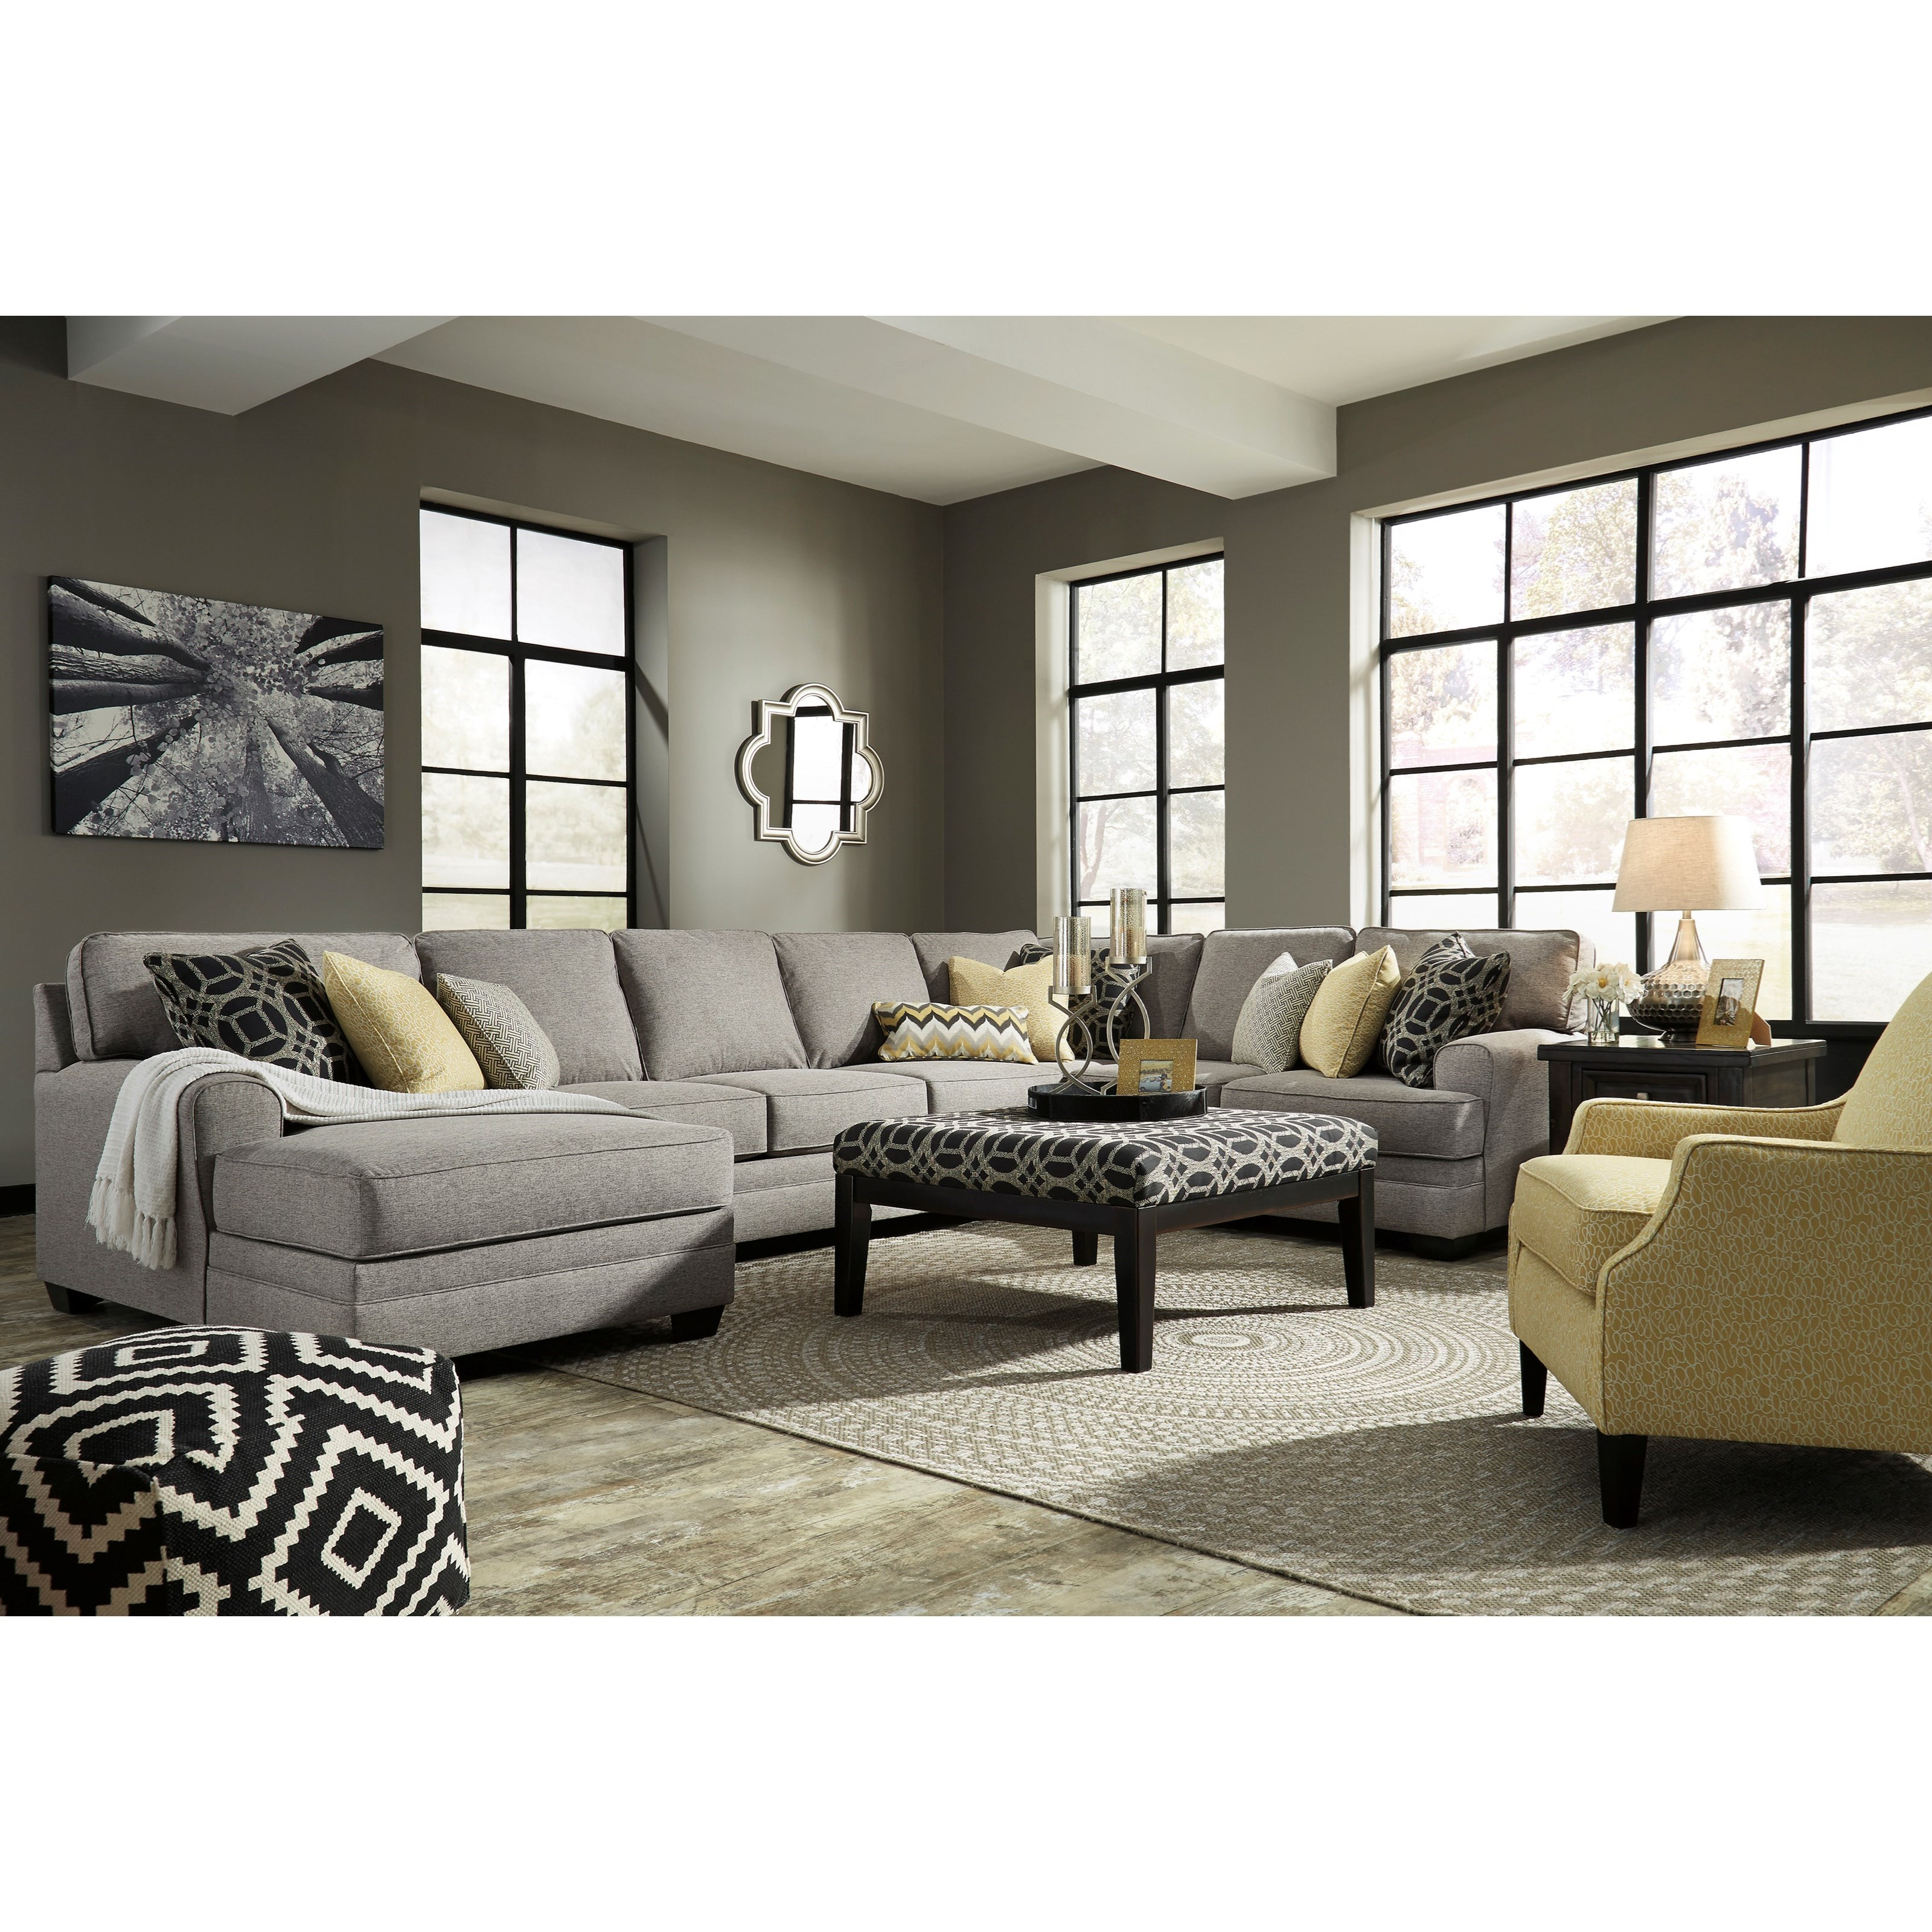 Benchcraft cresson contemporary 4 piece sectional with for Armless sectional sofa chaise